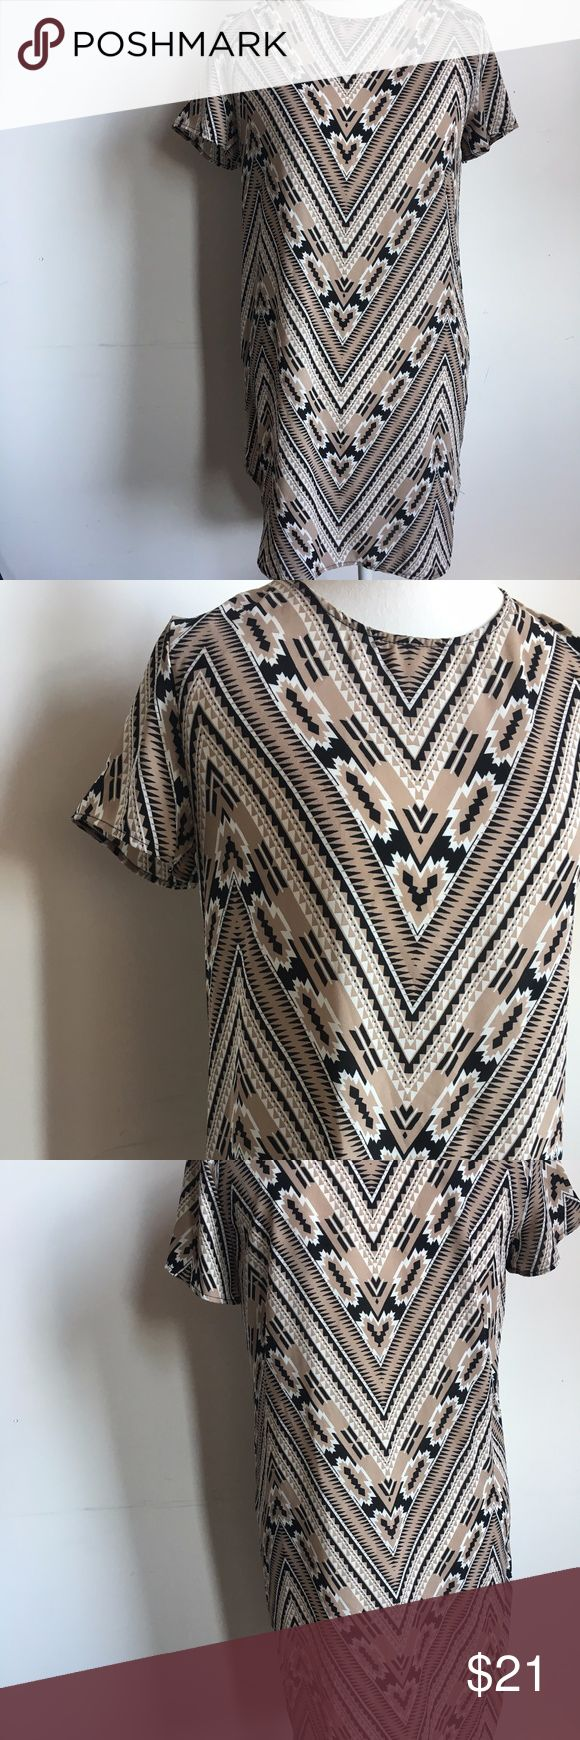 """Nordstrom WAYF Shift Dress in Tribal Print Nordstrom WAYF Crepe Print Shift Dress size. Small-runs small and too short for this 5'11"""" girl. Have to wear as a tunic but can't get it over my hips!:) Better for XS or S Petite EUC. Like New  Brown, Black, Creme, White, Tan Tirbal, Aztec, Geometric Print Great with leggings and layer under long duster, cardigan or black or white blazer for work or casual! Moving-must go! Bundle with another item(s) for discount and/or free shipping! Thanks! Wayf…"""